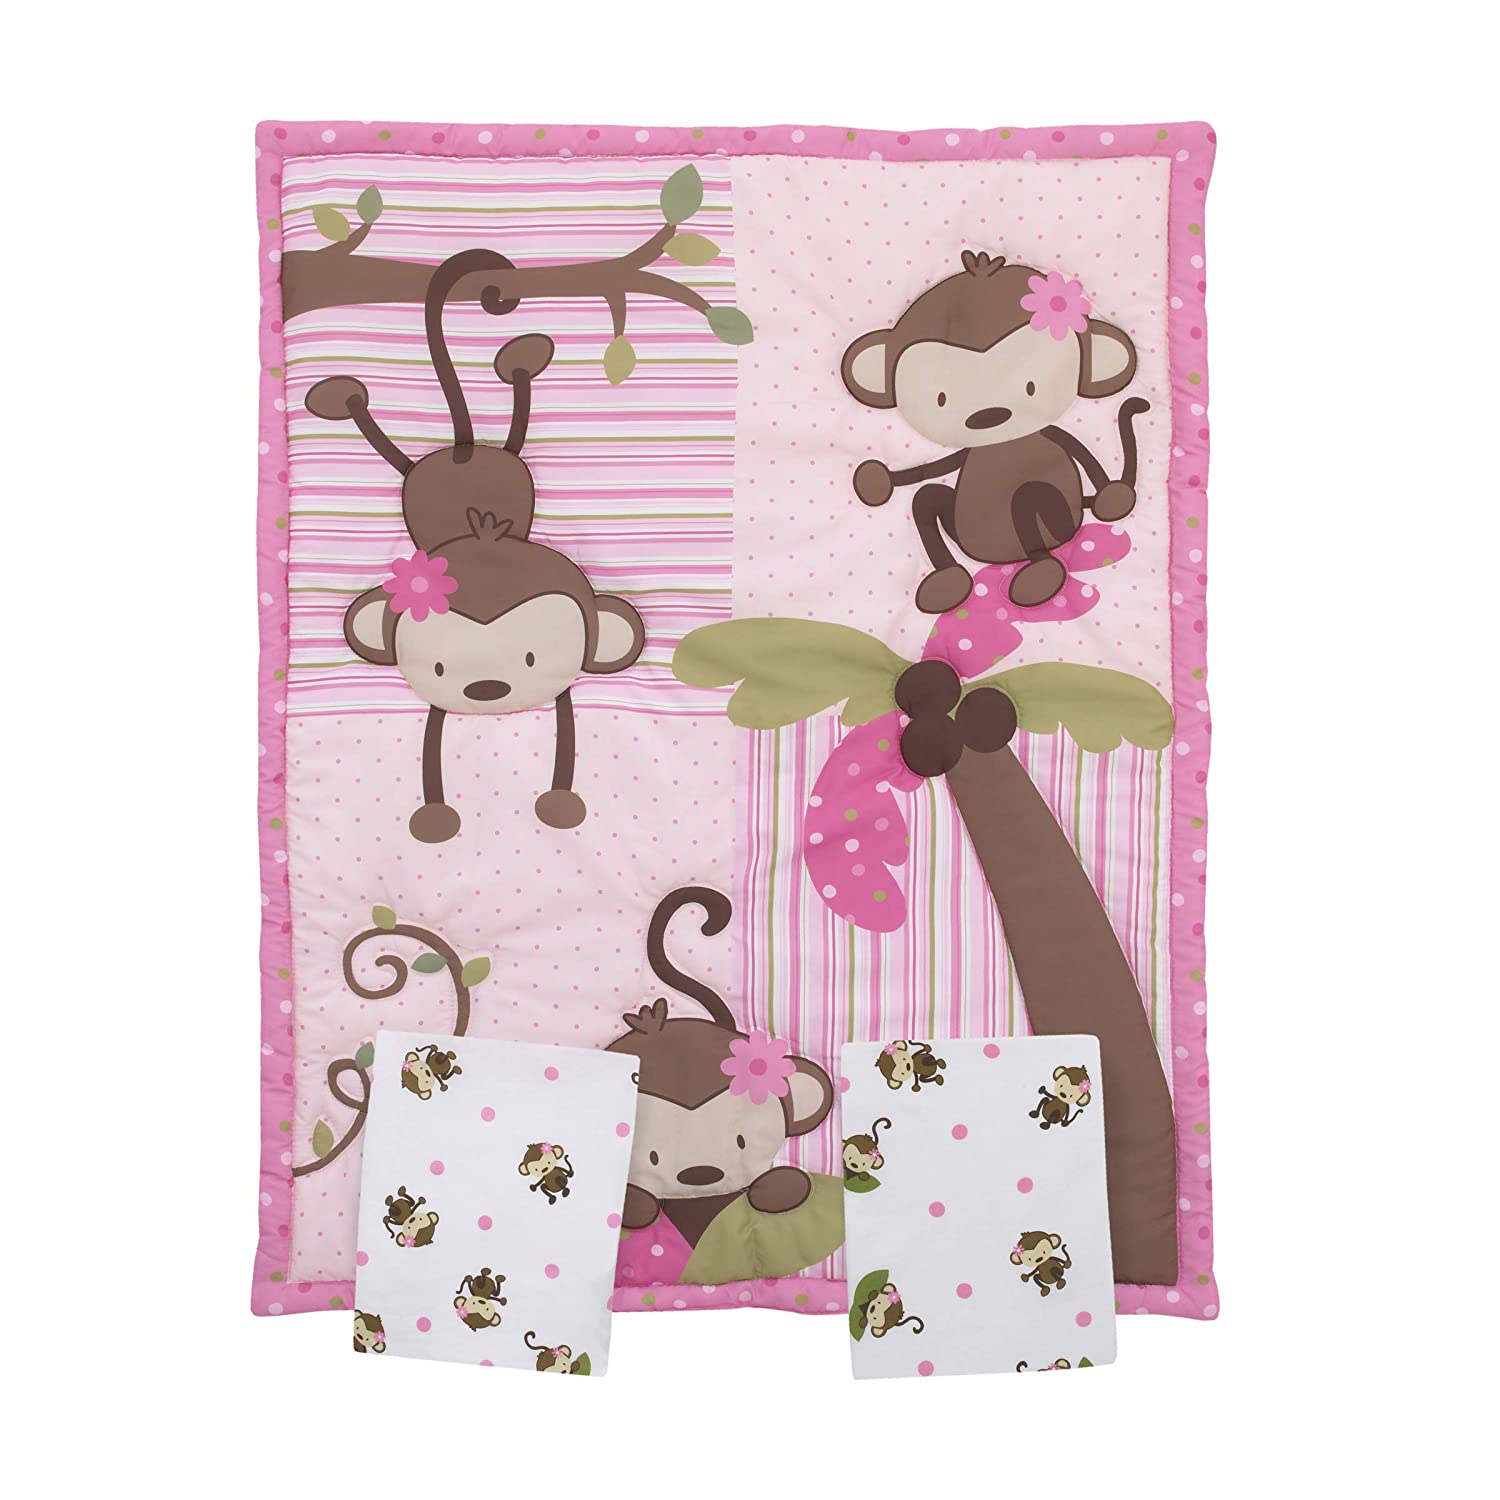 OFFicial store Little Bedding Courier shipping free shipping by NoJo Monkeys 3 Piece Mini Cr Crib Porta